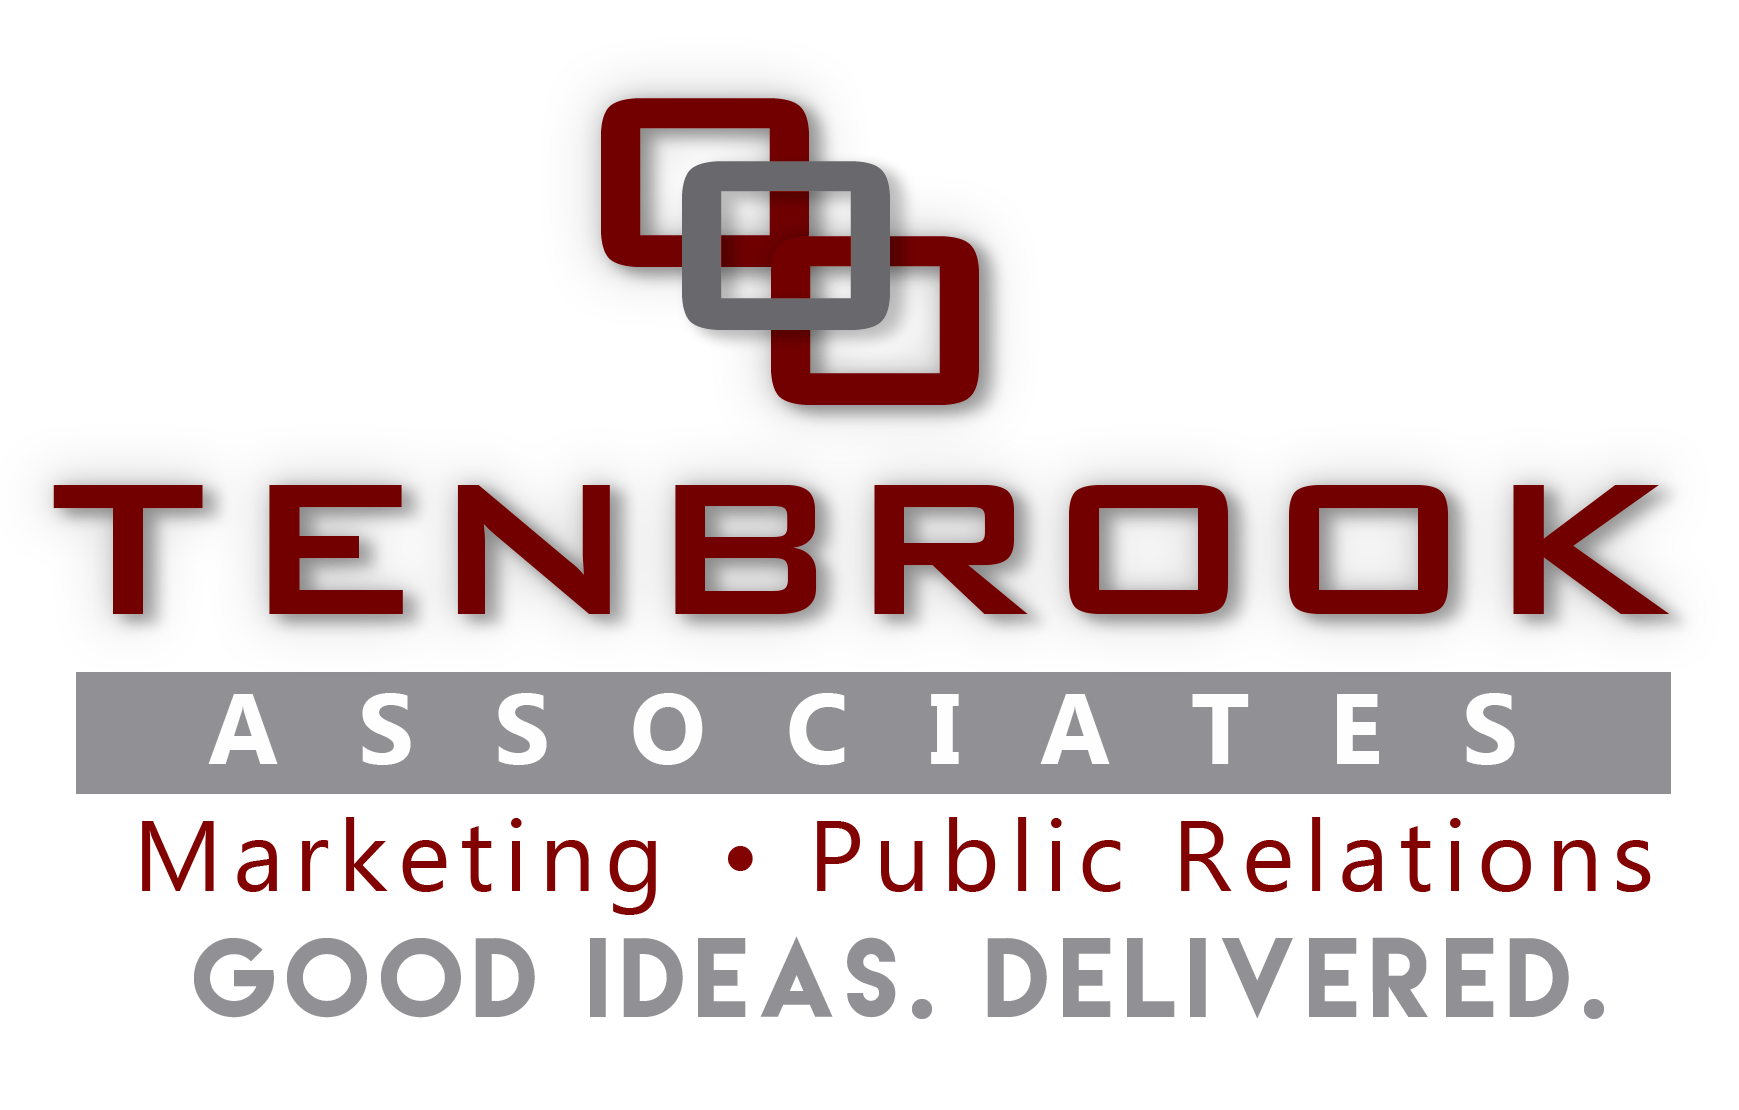 Tenbrook Associates Marketing & Public Relations